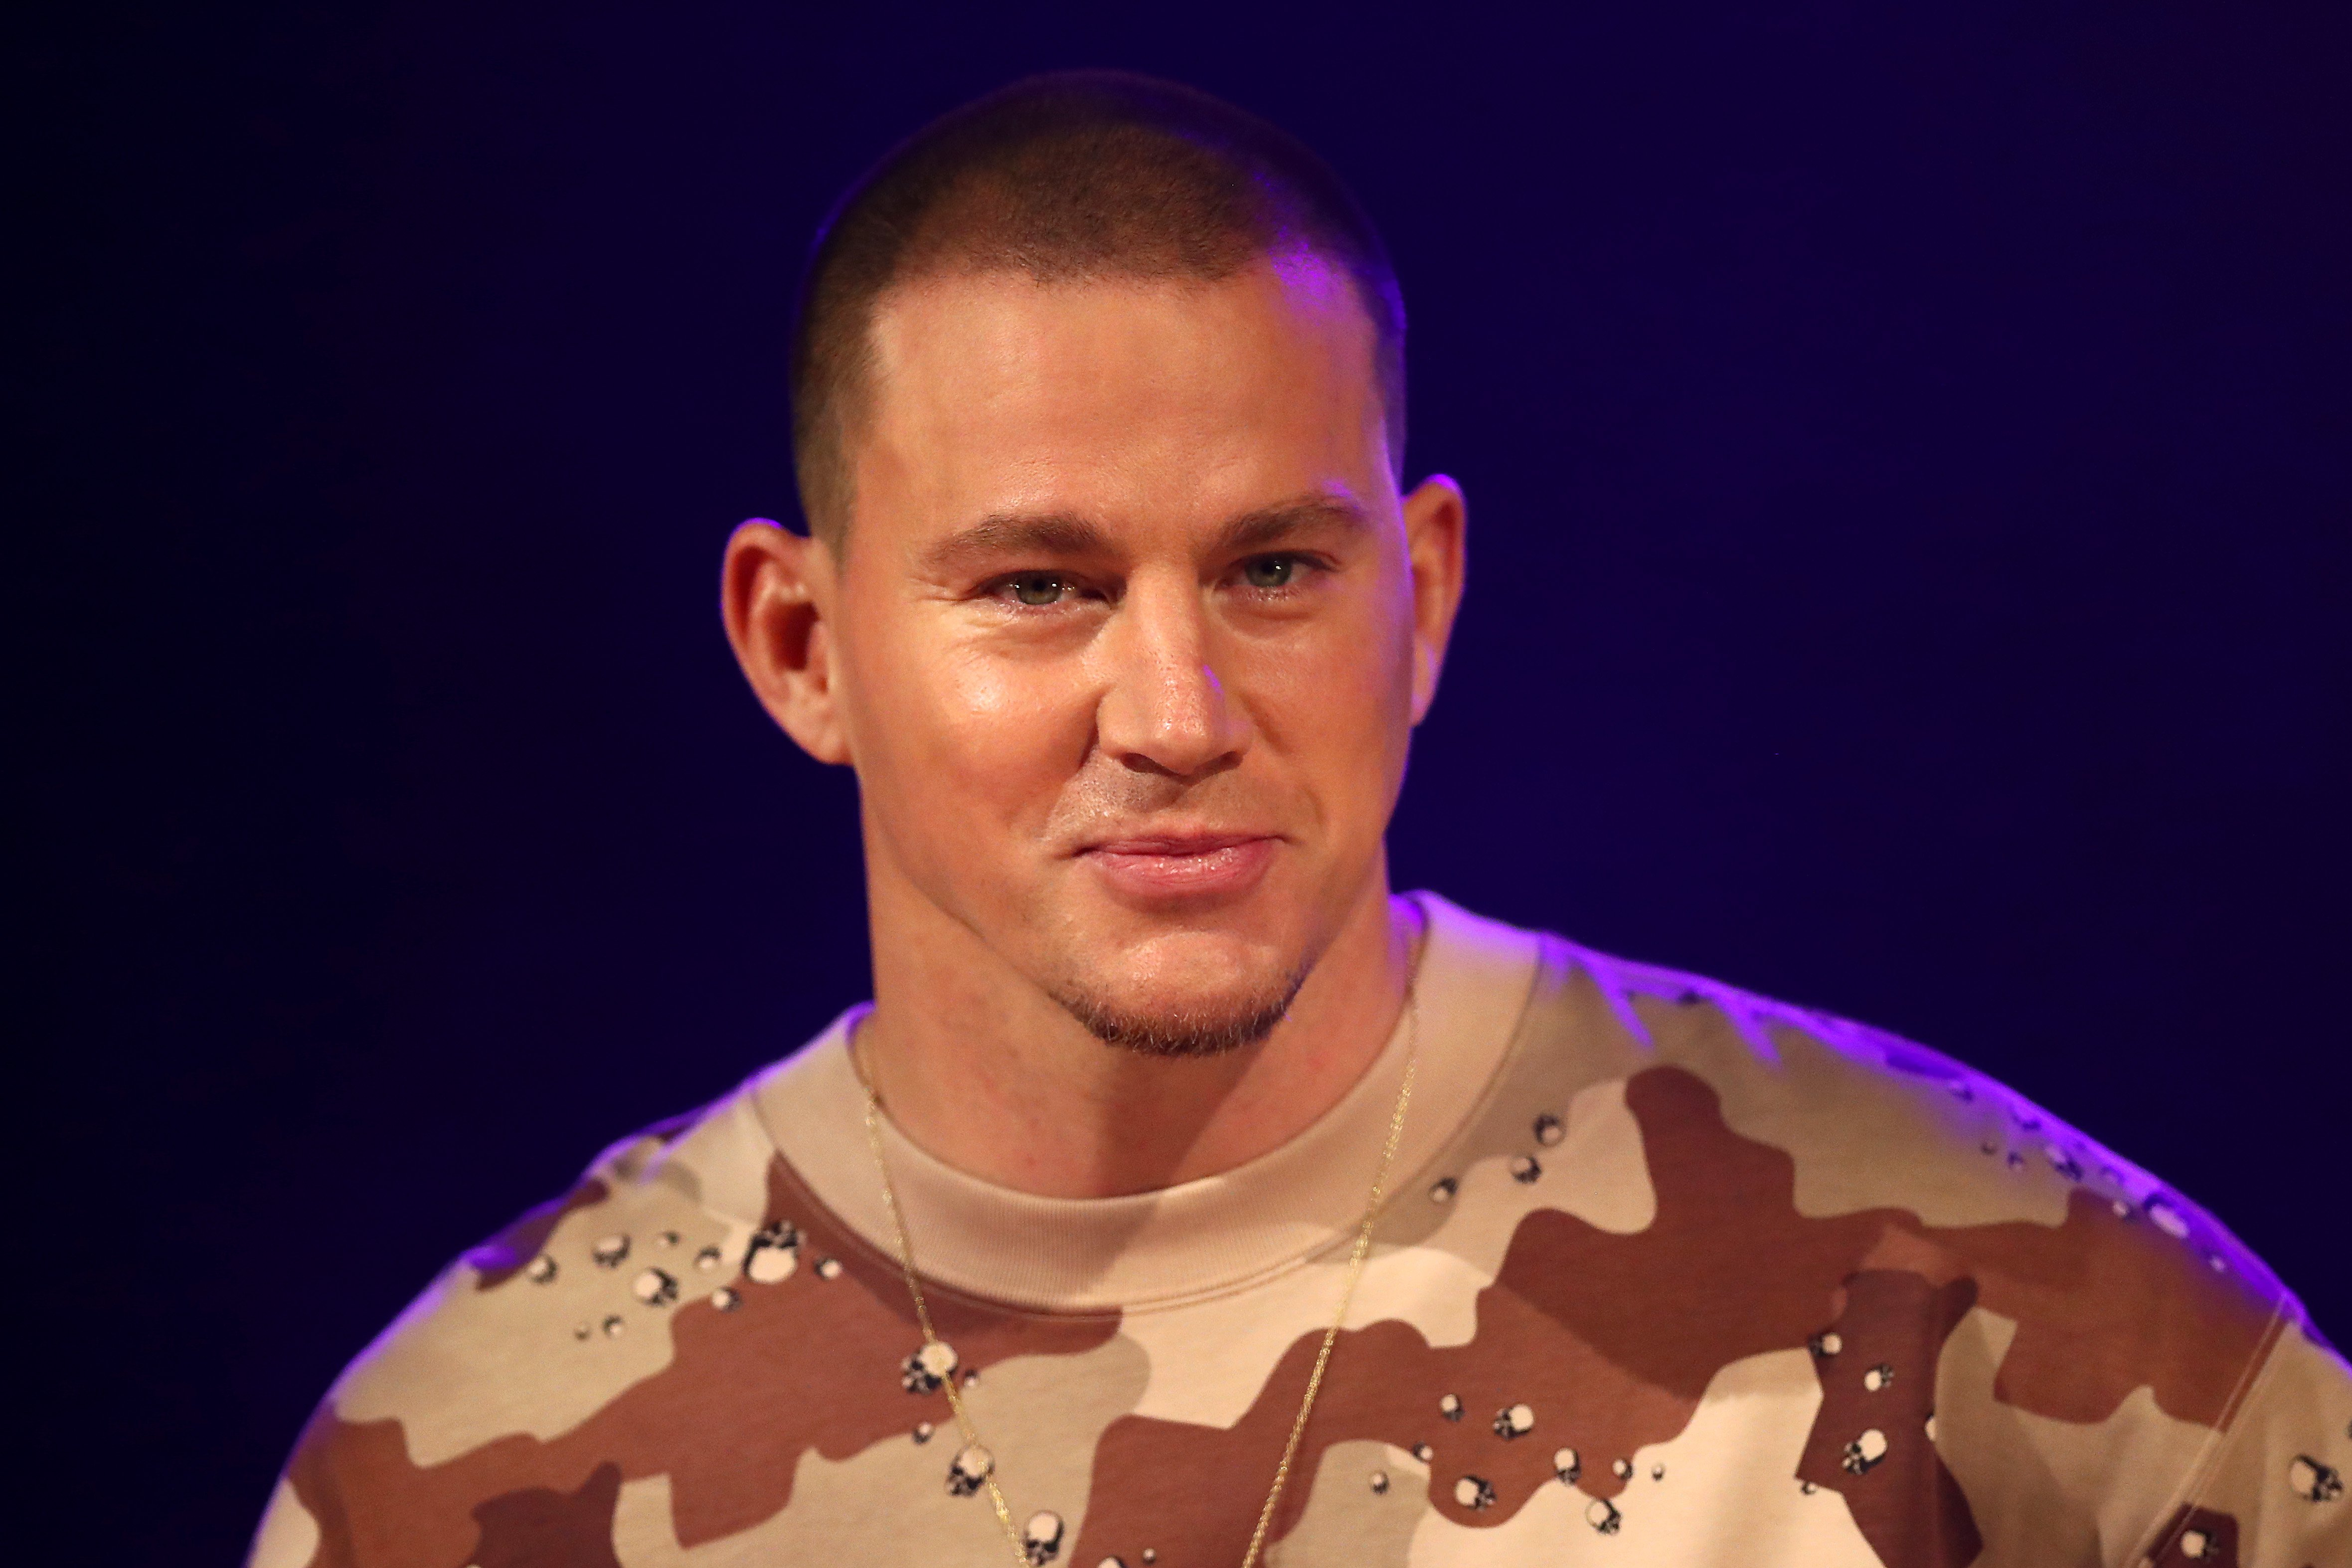 Channing Tatum at a media call on December 3, 2019, in Melbourne, Australia. | Photo: Getty Images